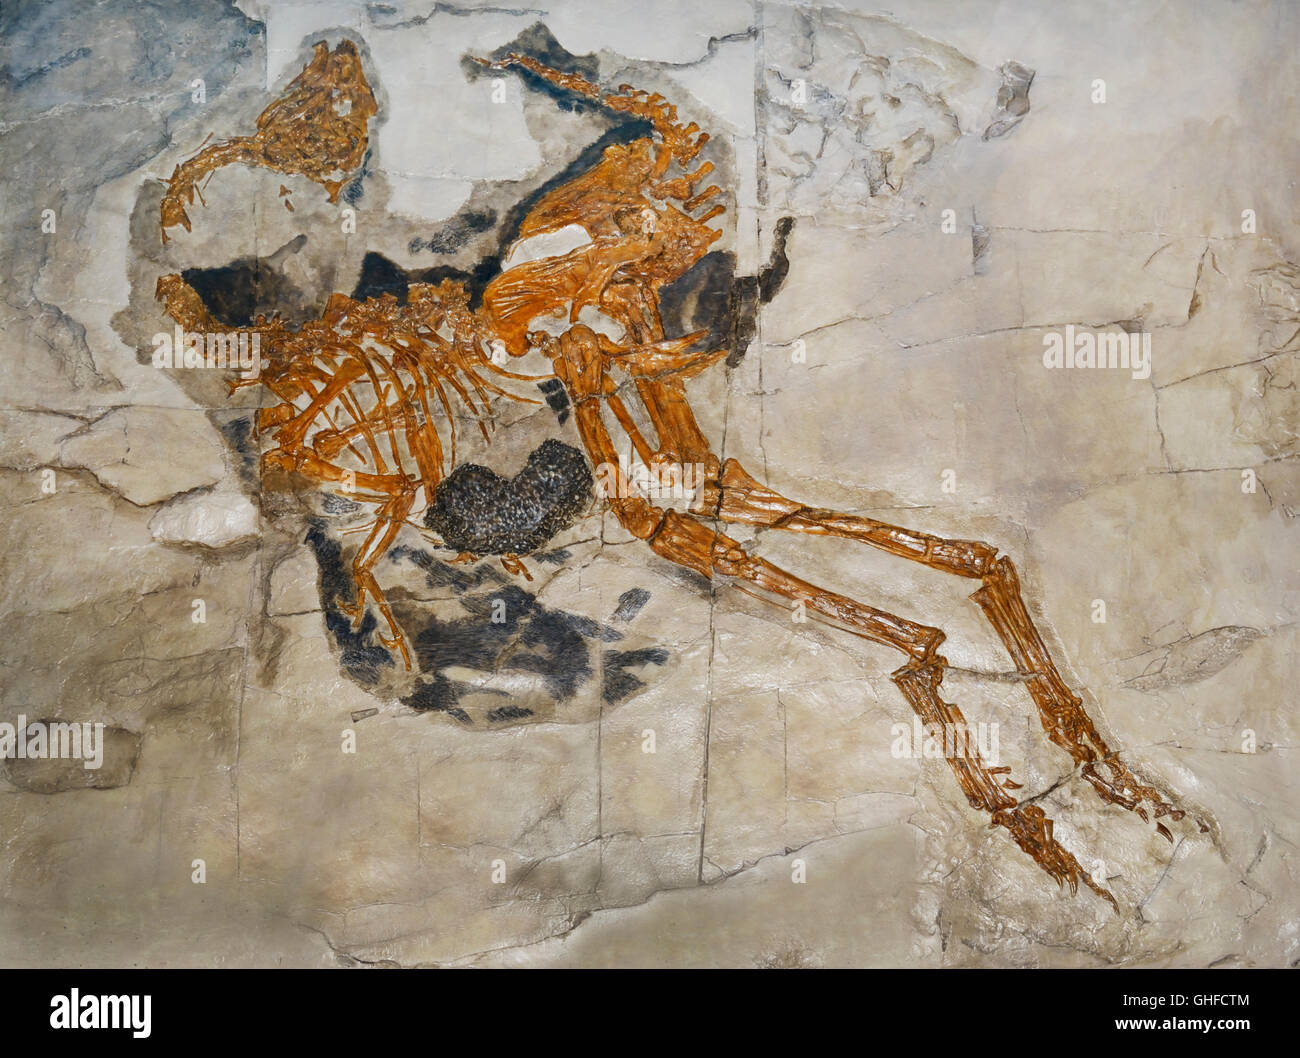 Caudipteryx zoui, the first non-bird dinosaur fossil found with modern feathers, early Cretaceous, Liaoning Prov. - Stock Image